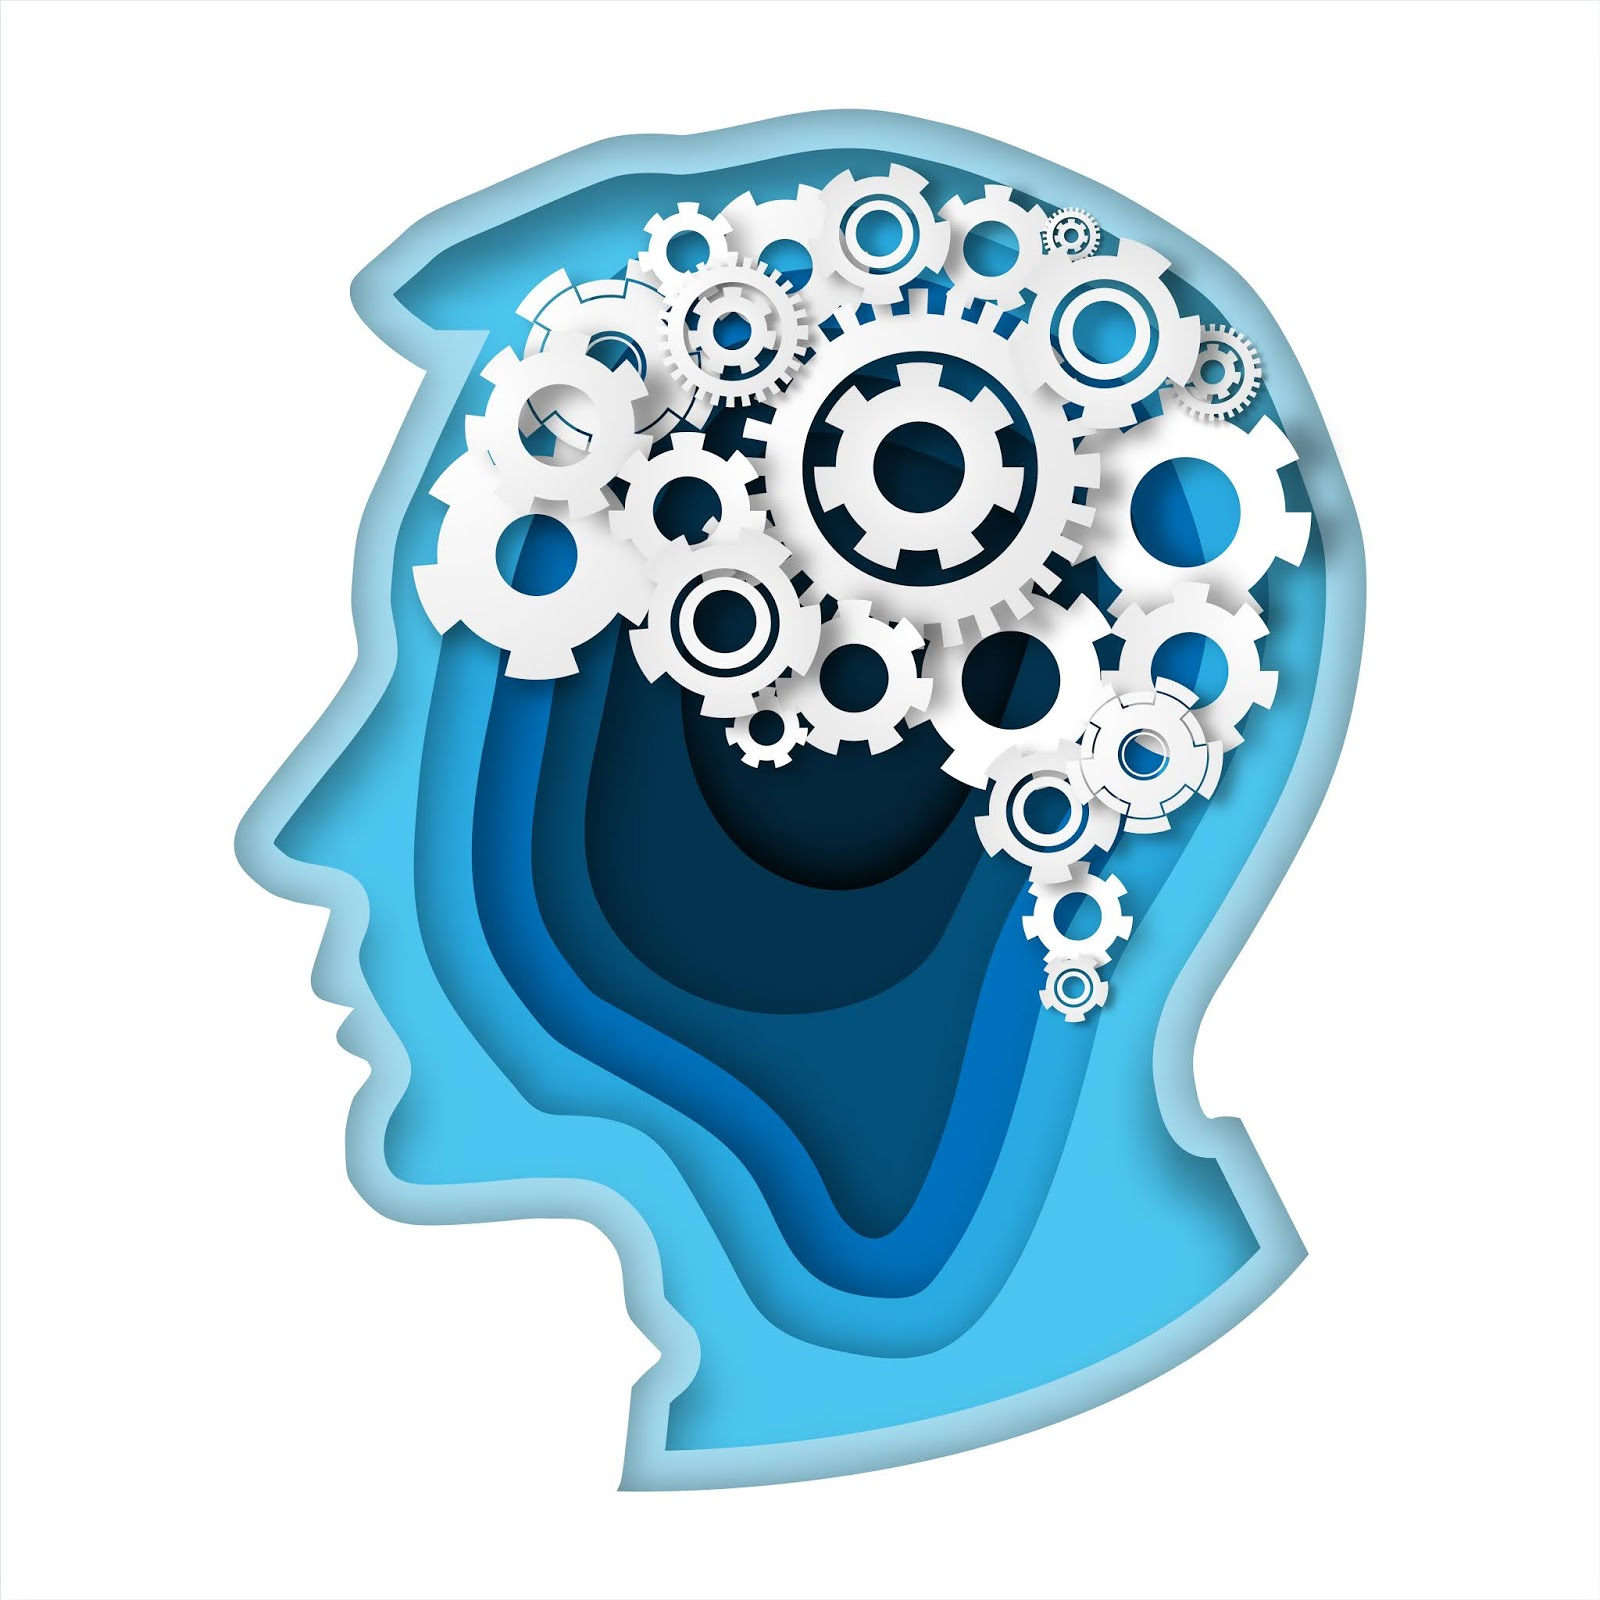 Head With Gear Brain Paper Art Style Thinking Concept	 Free Download Vector CDR, AI, EPS and PNG Formats